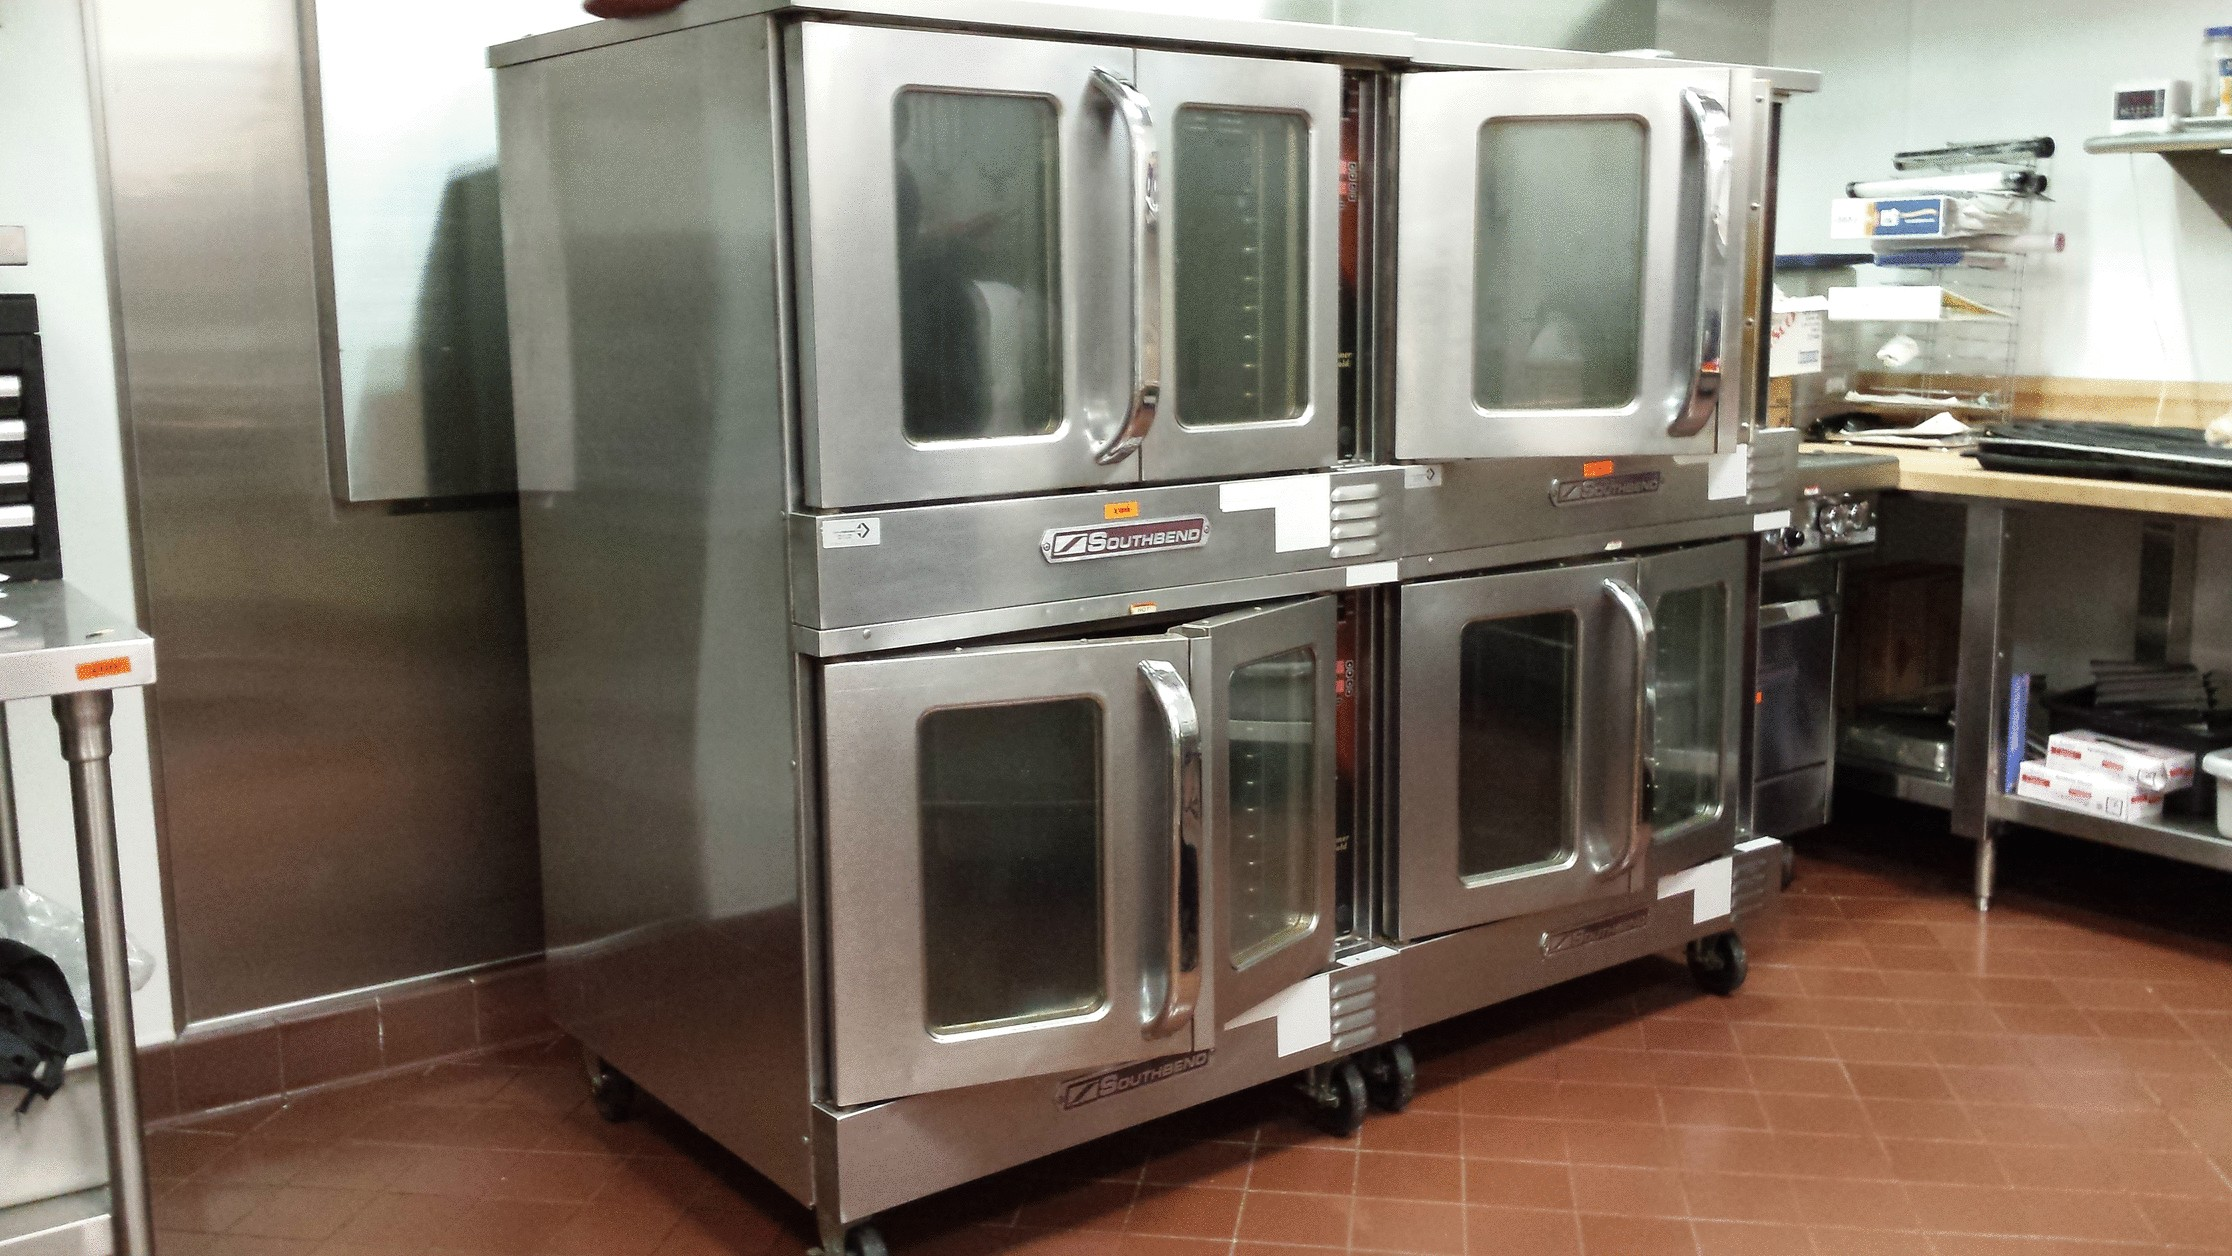 we have more than 10 years specialized experience with deep cleaning and degreasing all types of kitchens specializing in restaurants from high end to